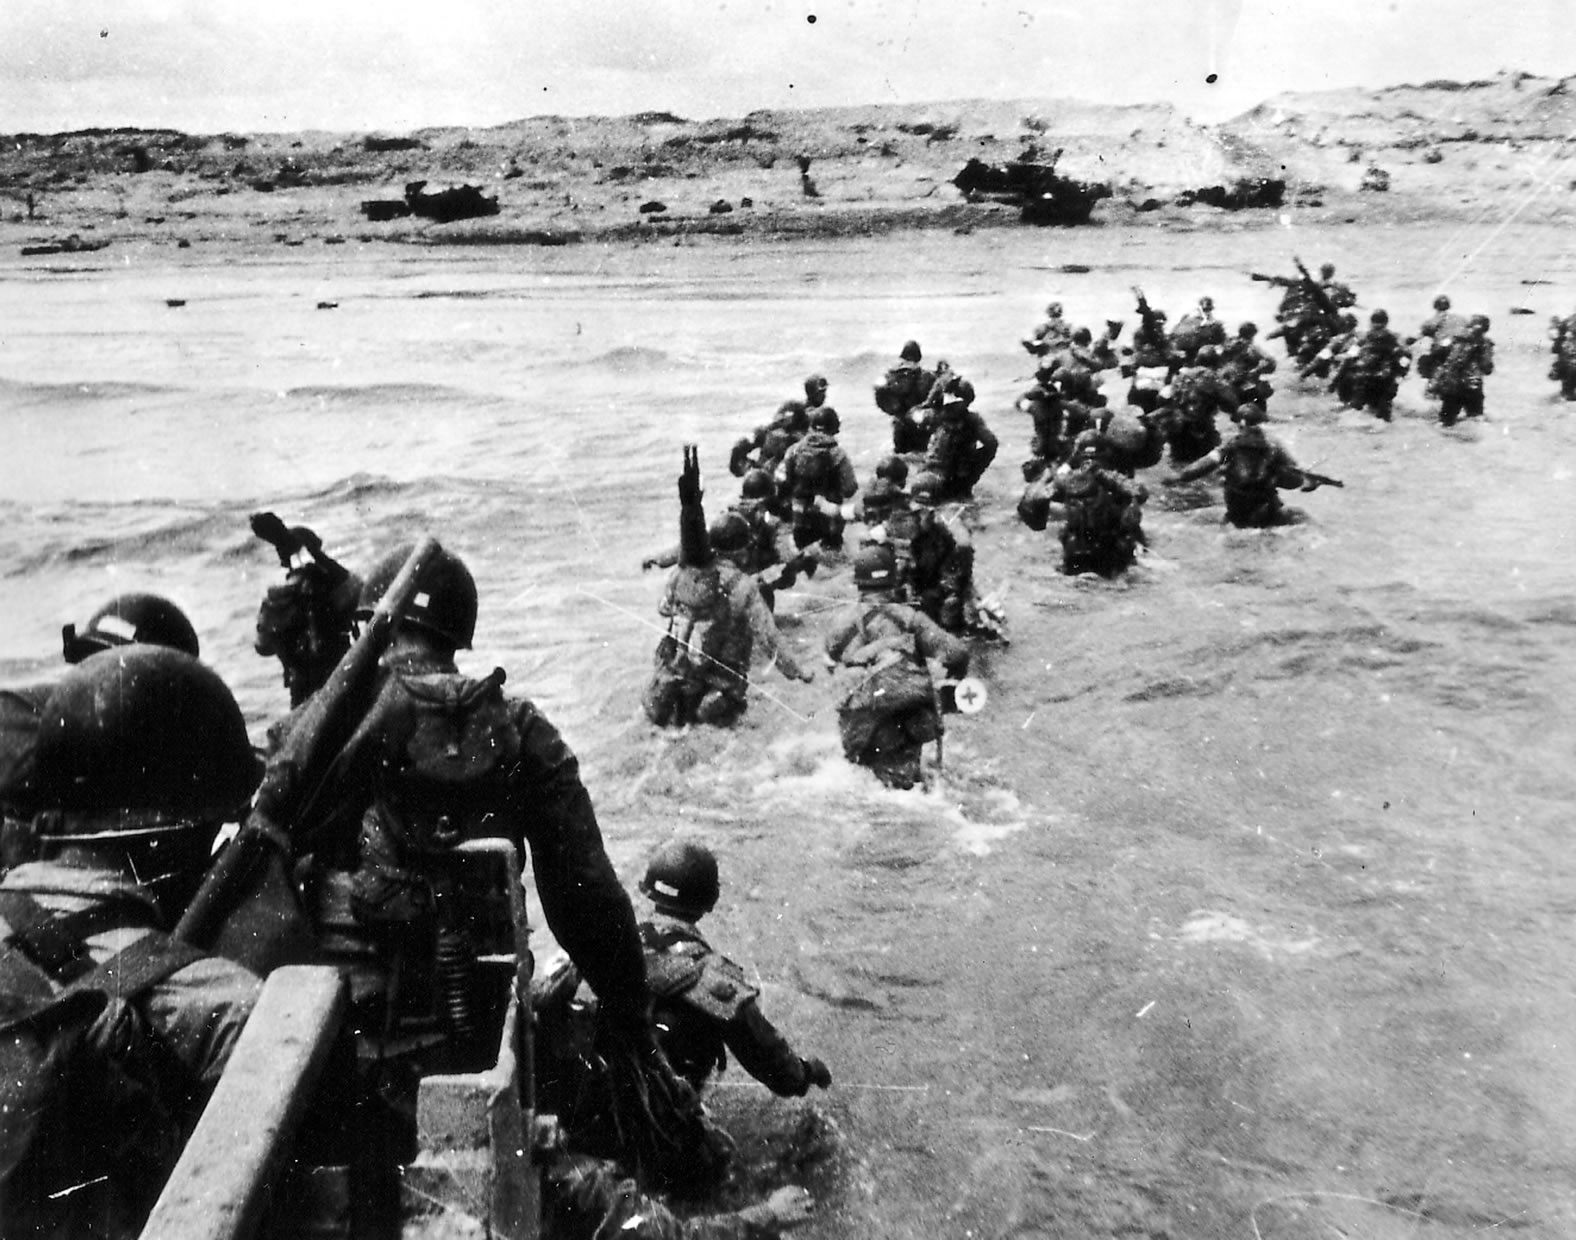 D-Day Landings, June 6 1944